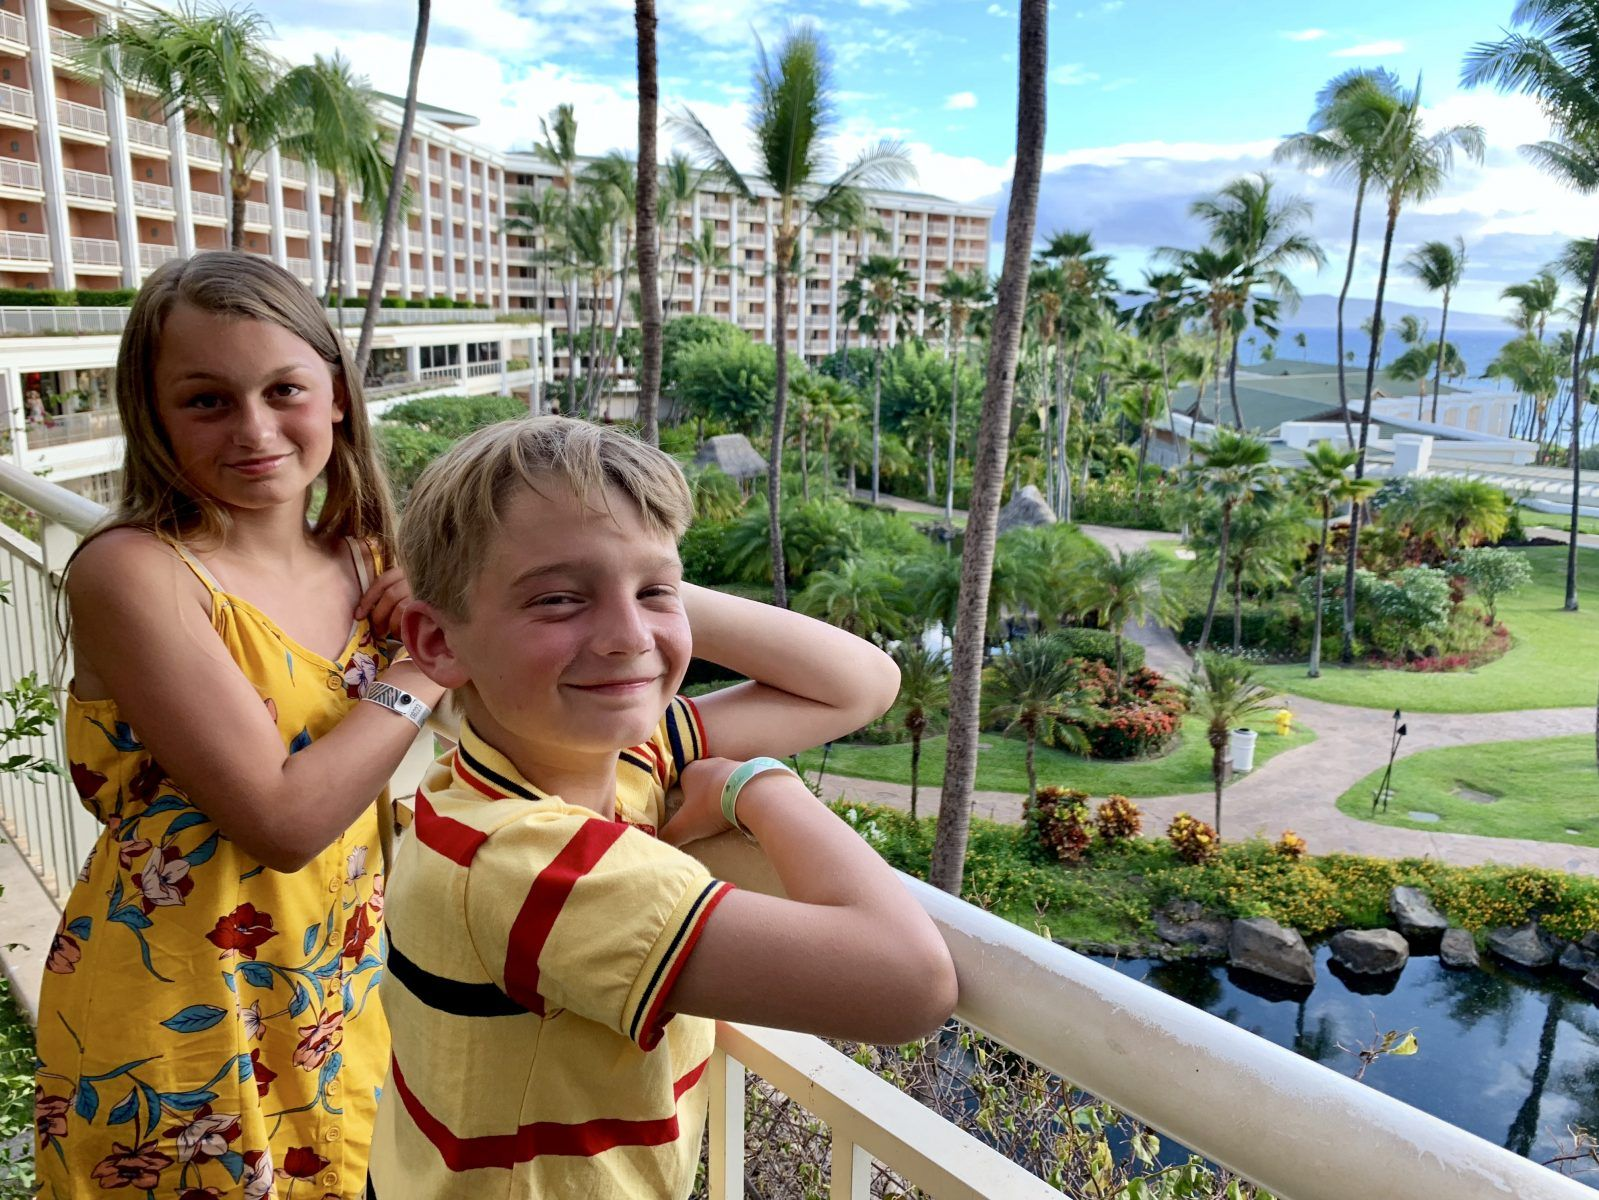 5 Best Hilton Hotels for Families You Can Book With Points